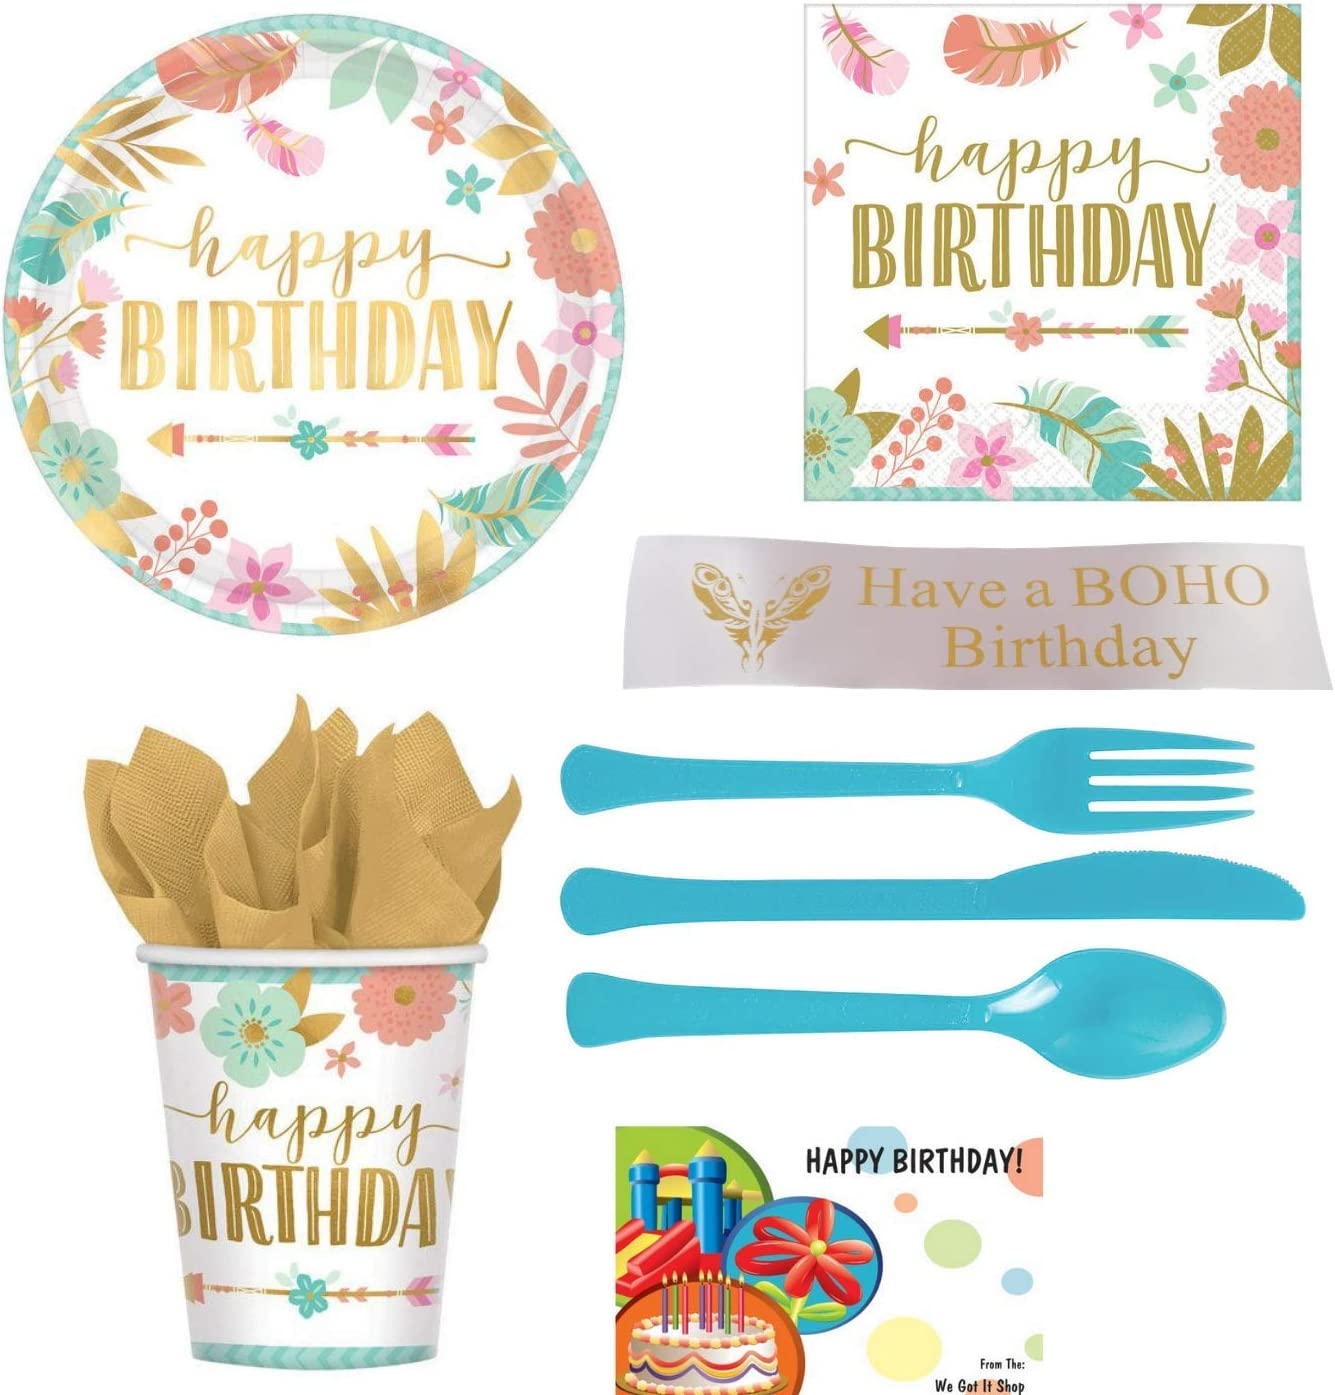 BOHO Birthday, Girl Birthday Party Supplies Kit With Plates, Napkins, Cups, Plastic Ware and Bonus Printed Ribbon